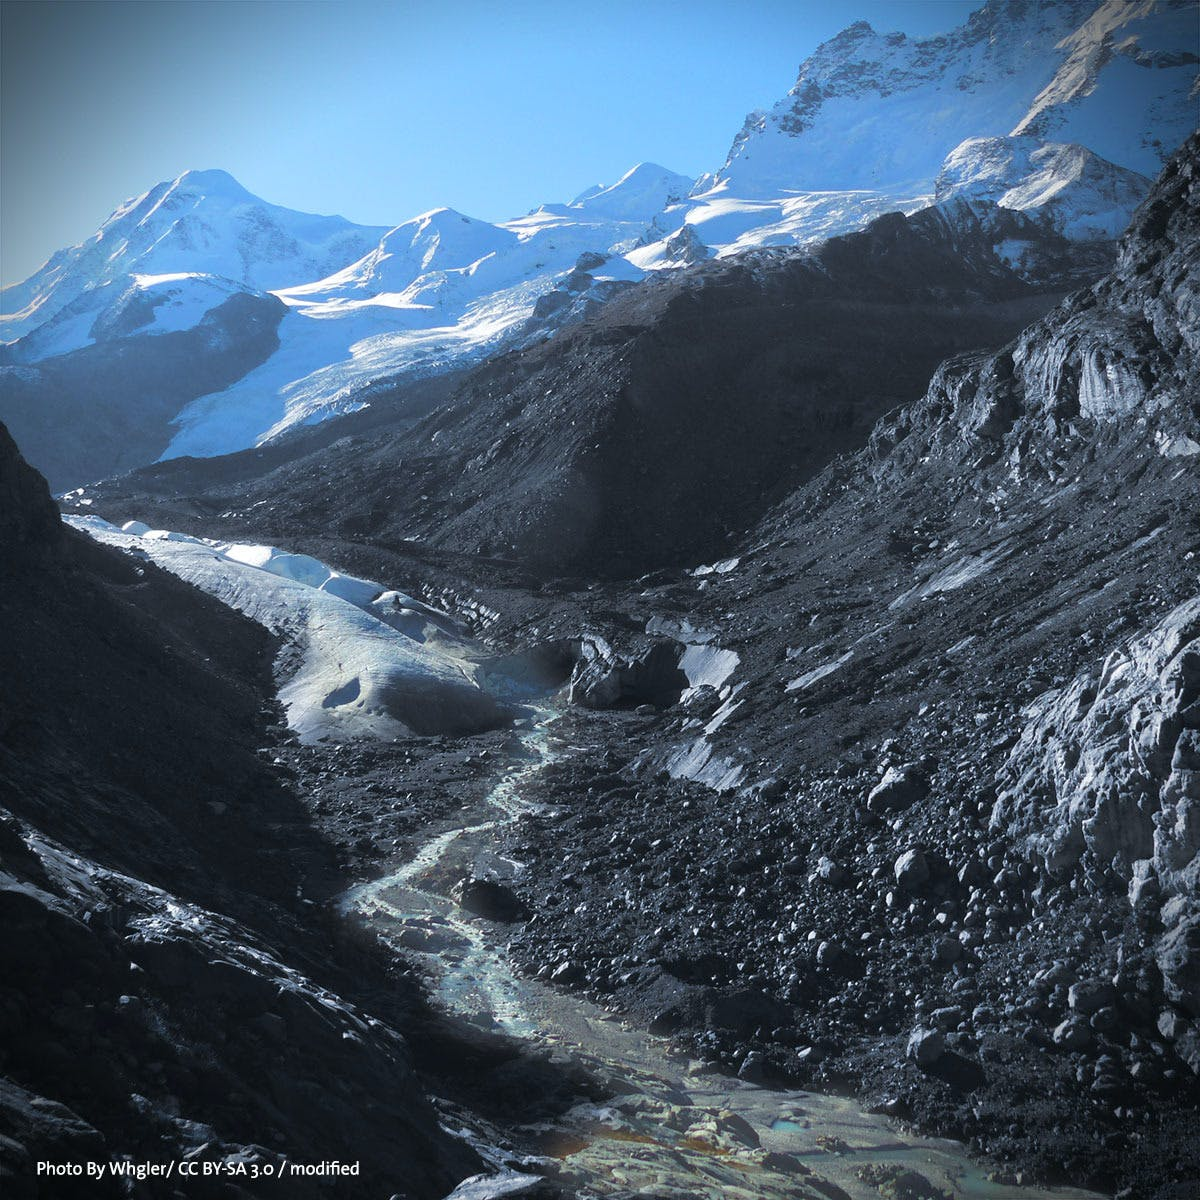 Climate Change and Water in Mountains: A Global Concern